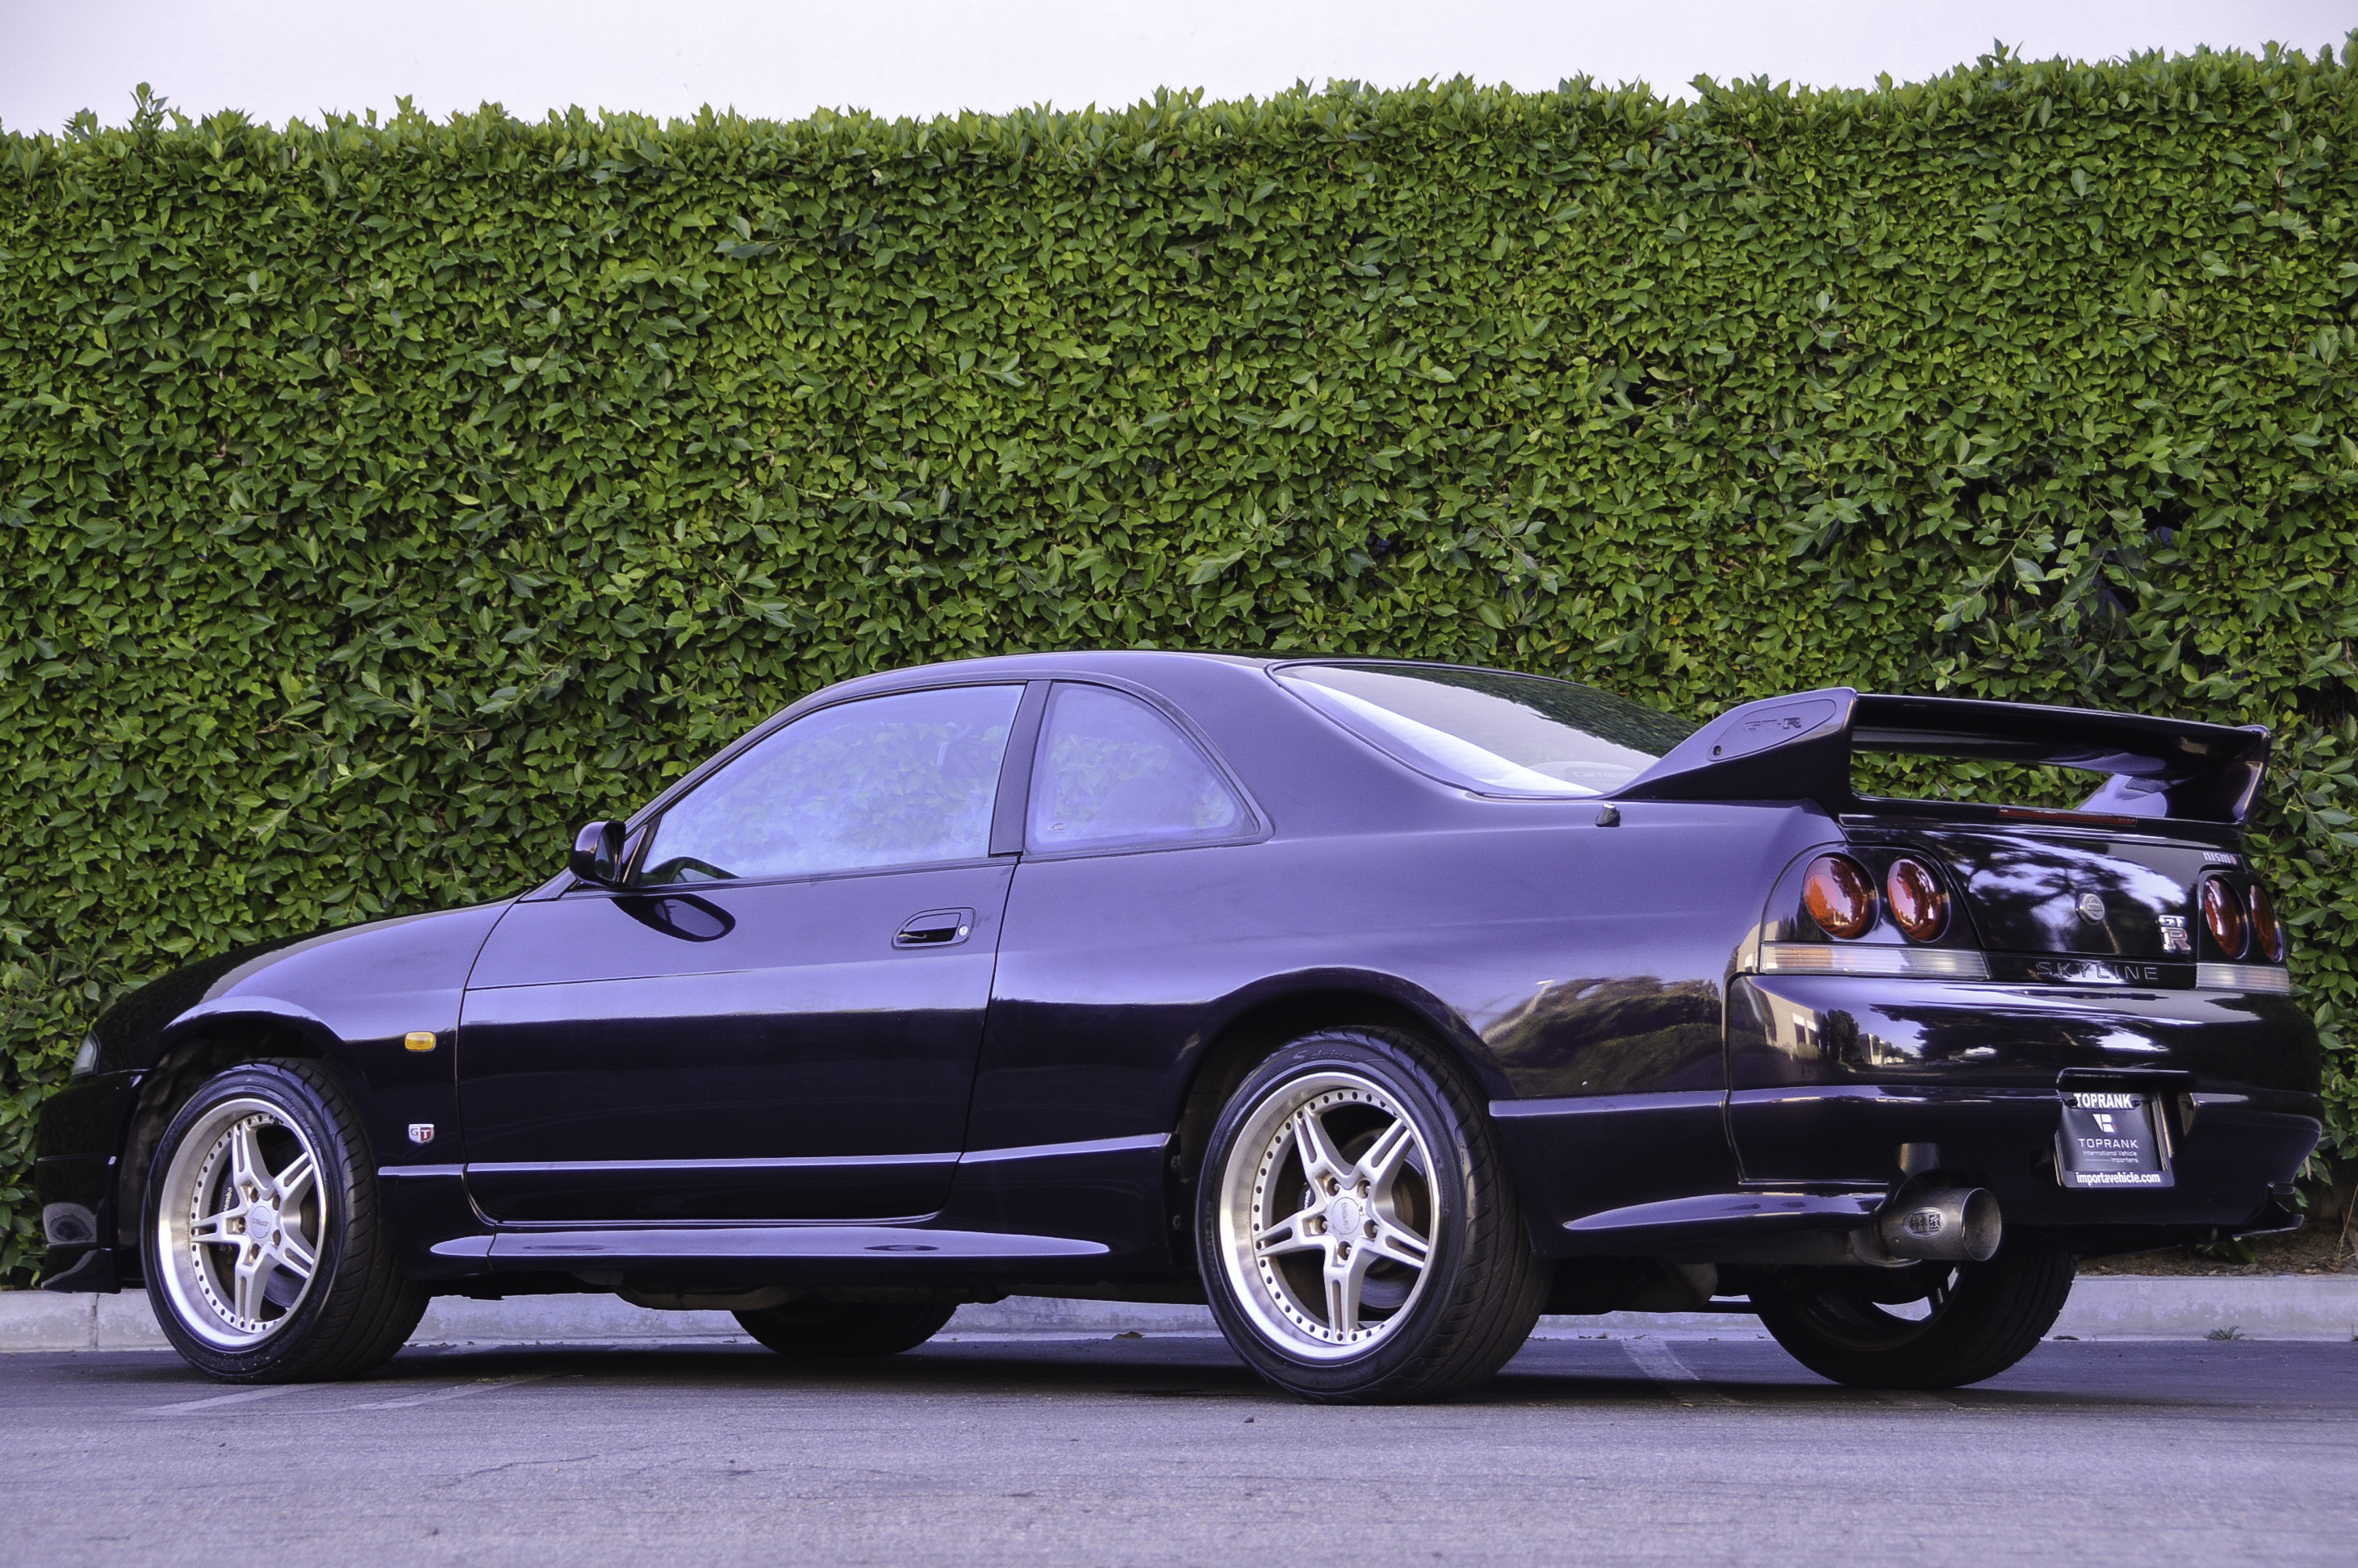 Midnight Purple R33 Nissan Skyline GT-R Toprank Importers